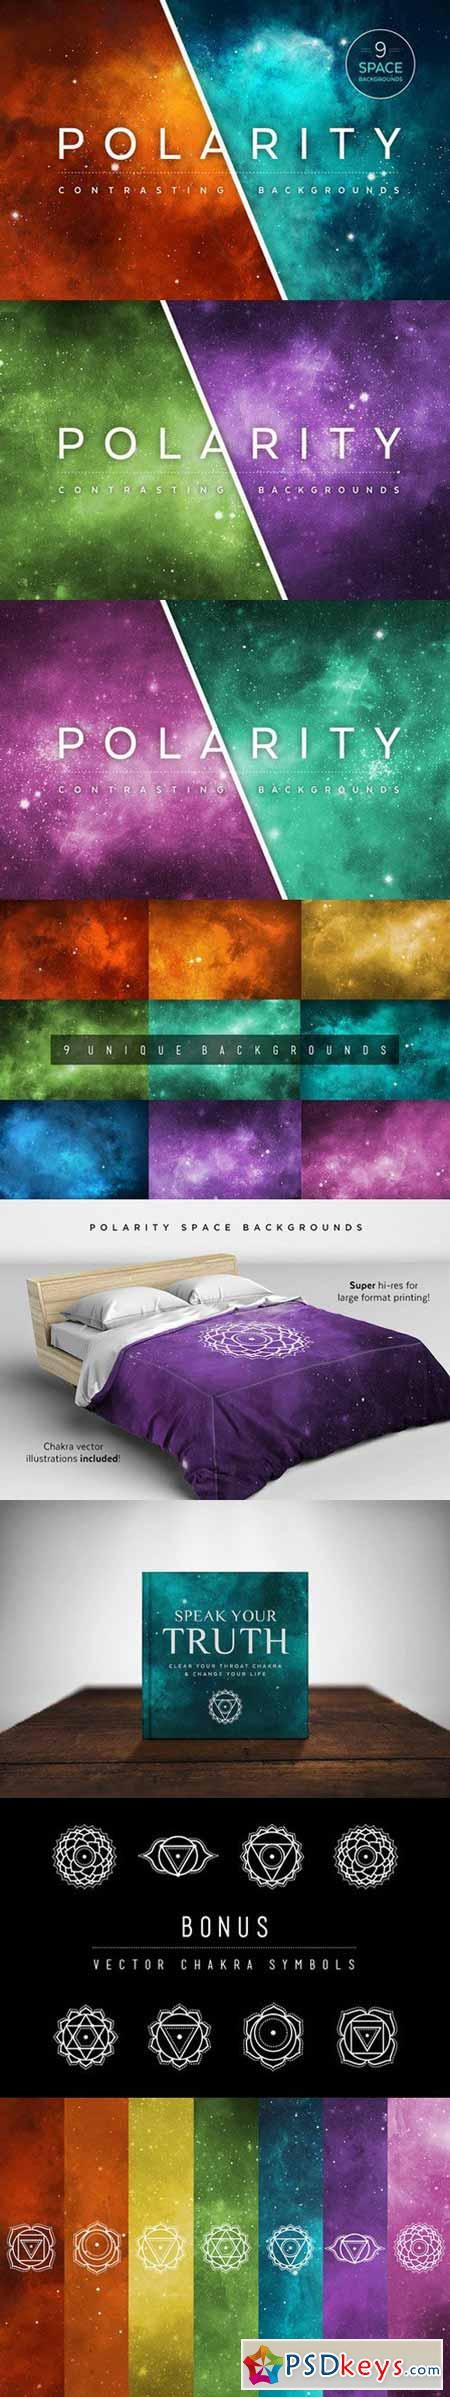 Polarity Space Backgrounds 606857